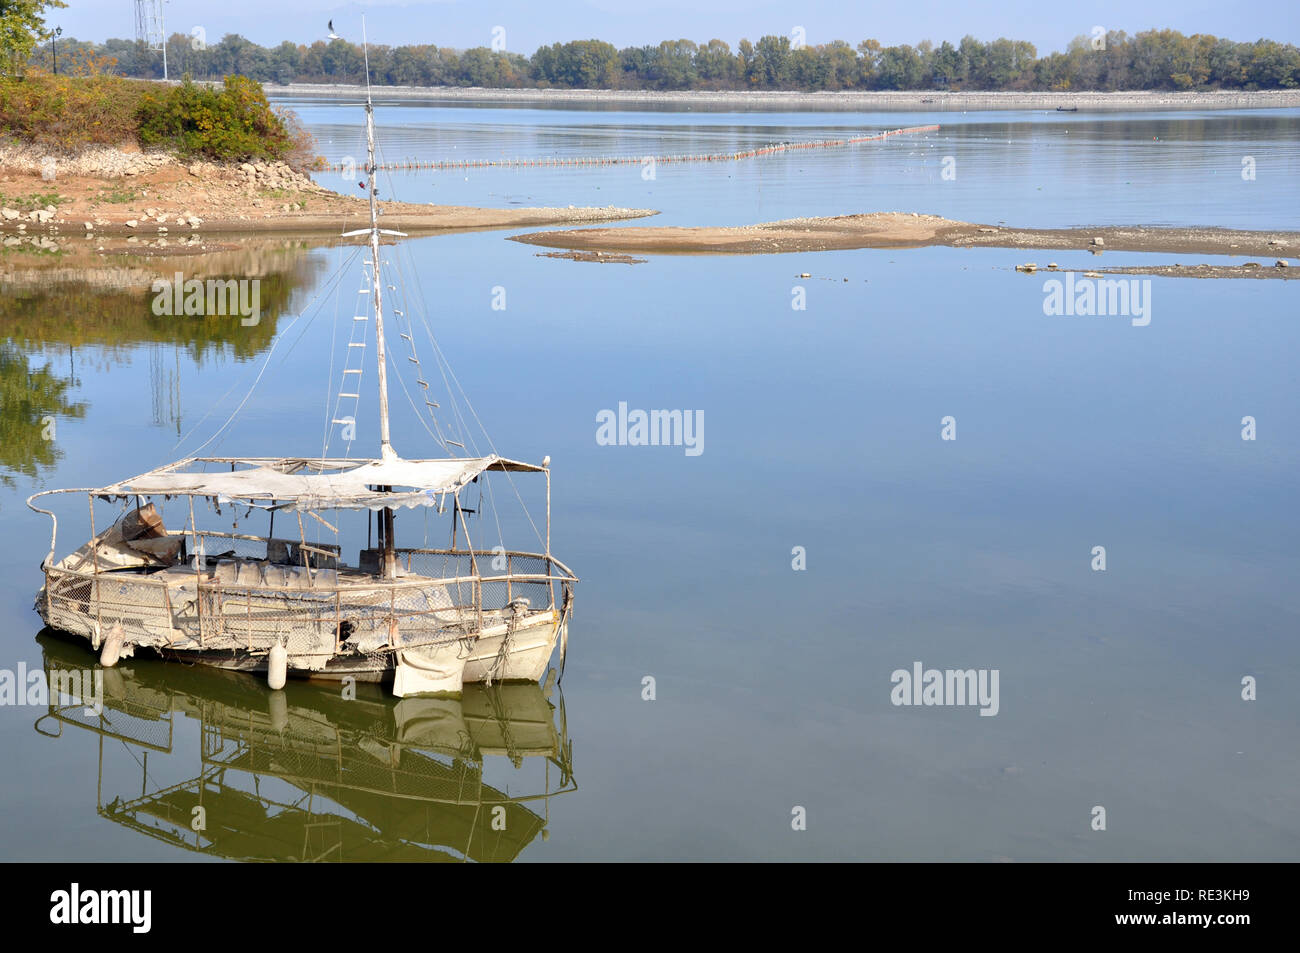 an old boat on Kerkini lake - Greece - Stock Image